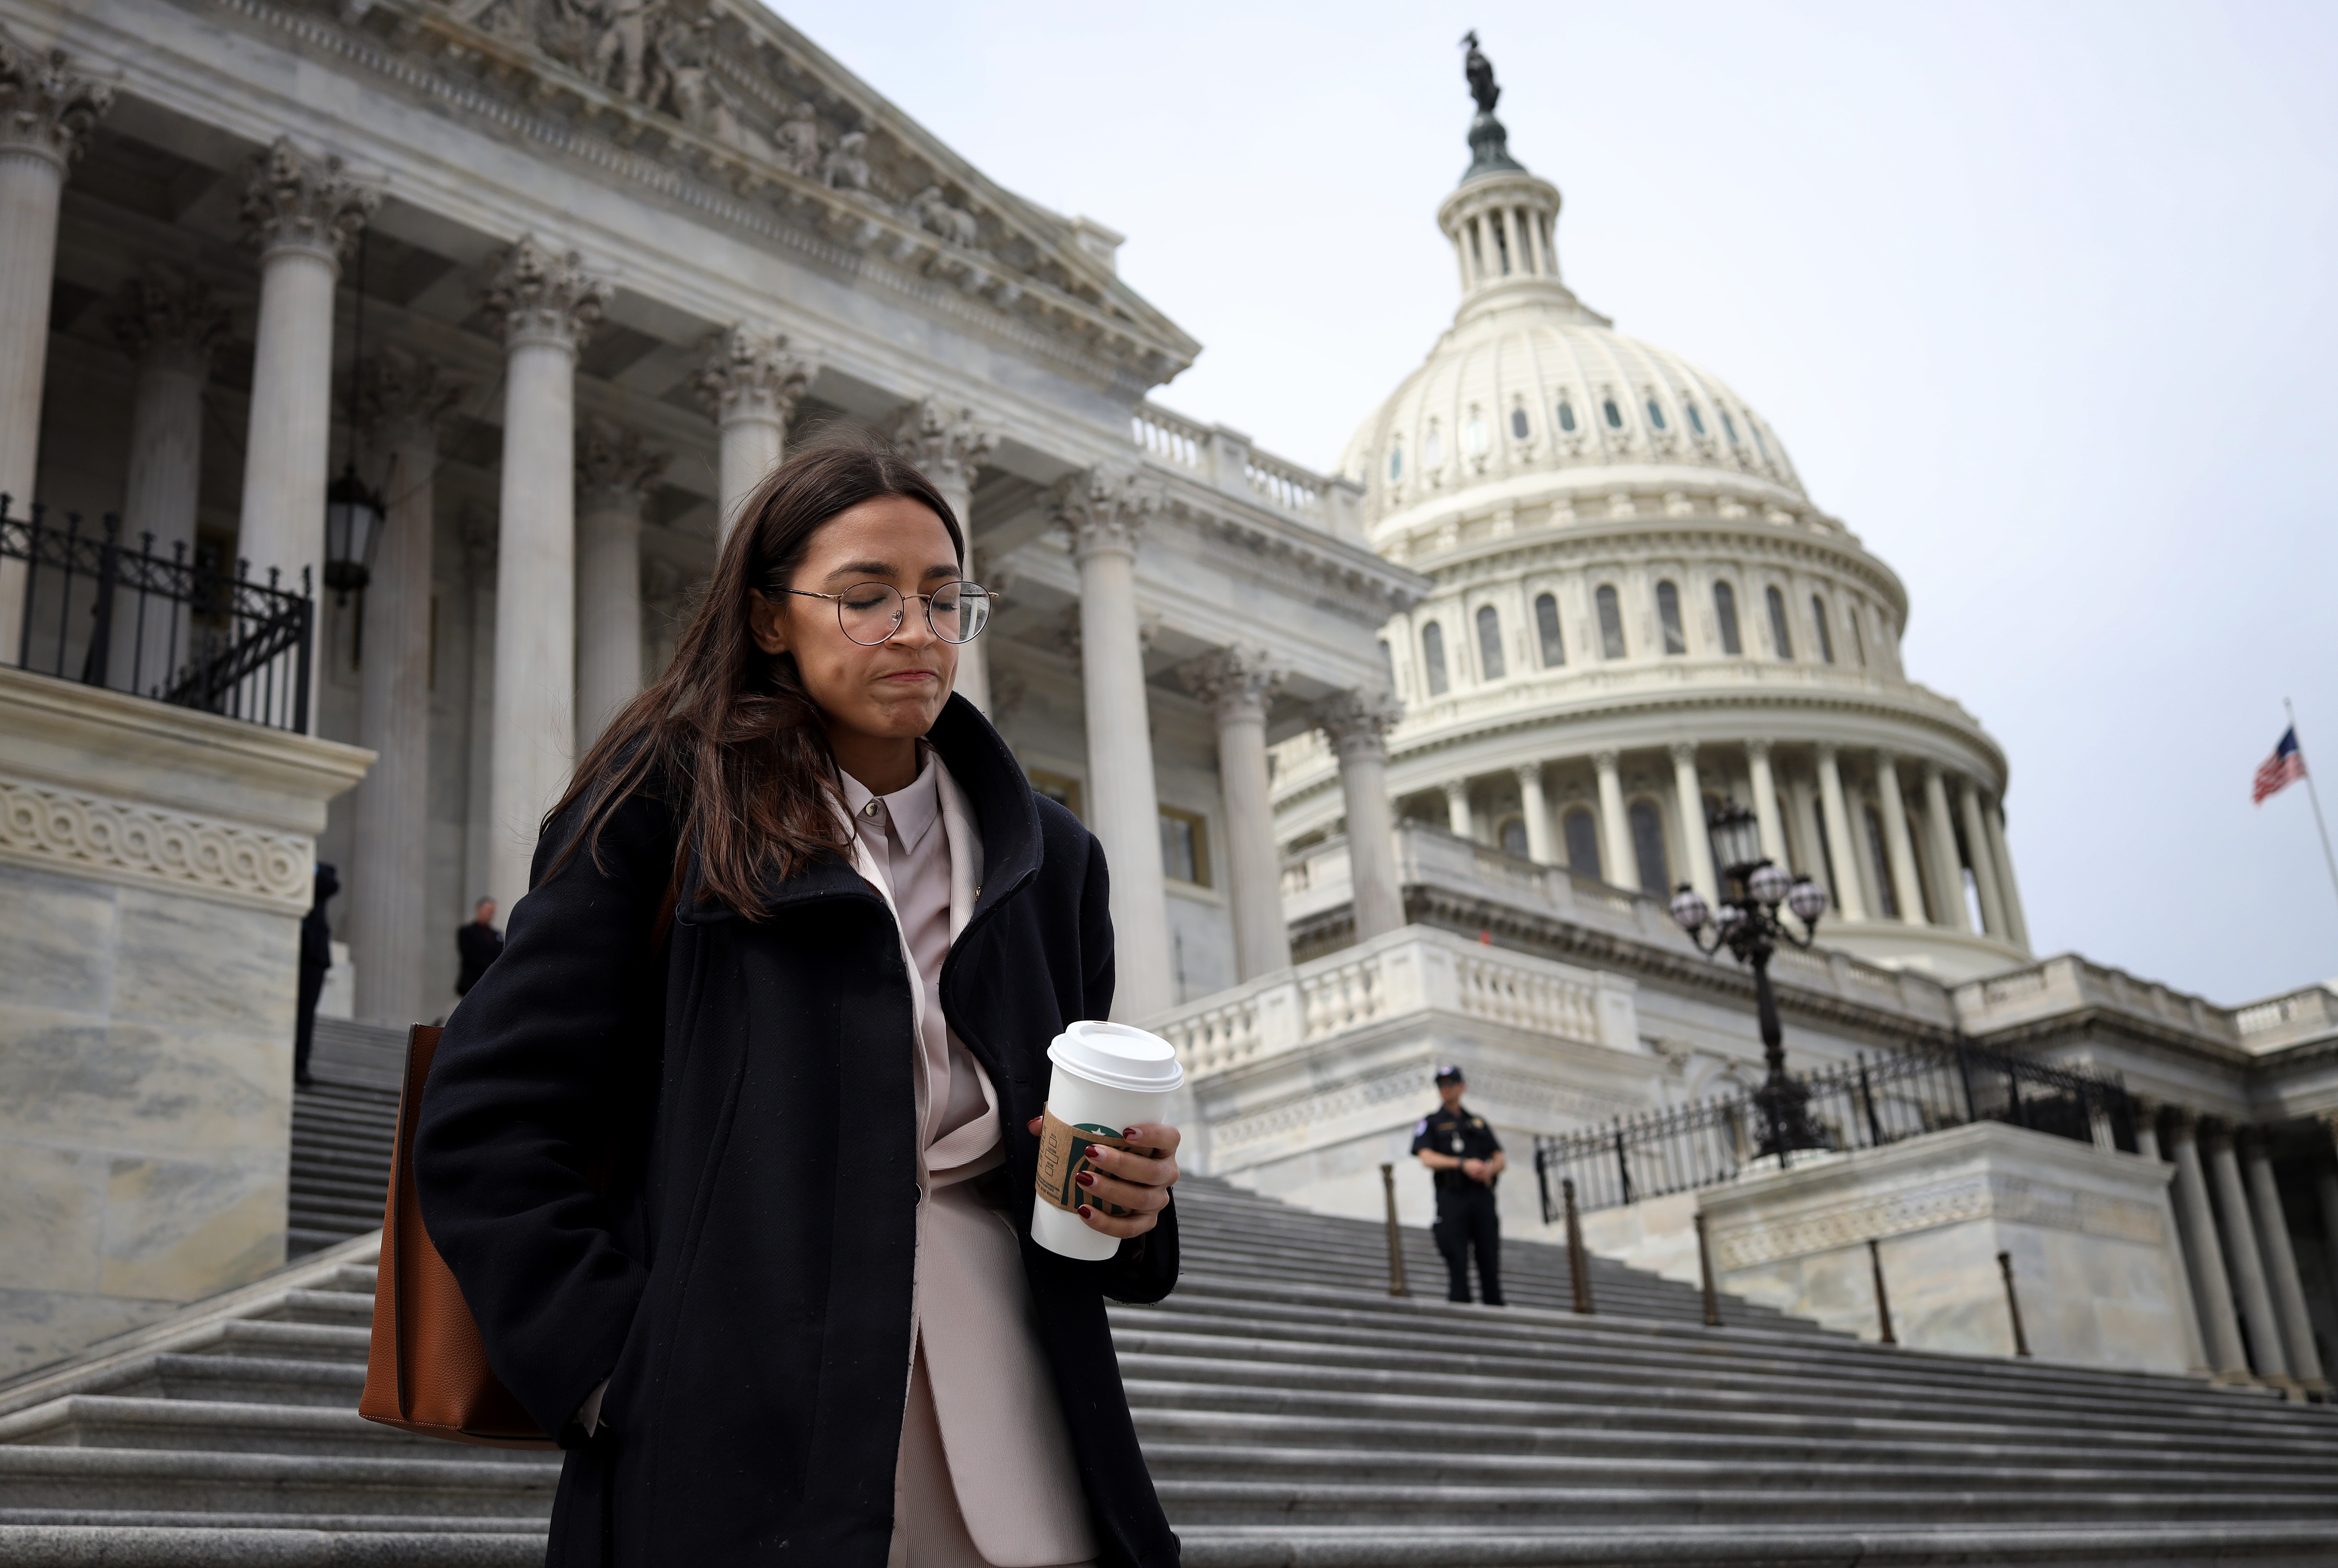 WASHINGTON, DC - MARCH 27: Rep. Alexandria Ocasio-Cortez (D-NY) leaves the U.S. Capitol after passage of the stimulus bill known as the CARES Act on March 27, 2020 in Washington, DC. The stimulus bill is intended to combat the economic effects caused by the coronavirus pandemic. (Photo by Win McNamee/Getty Images)